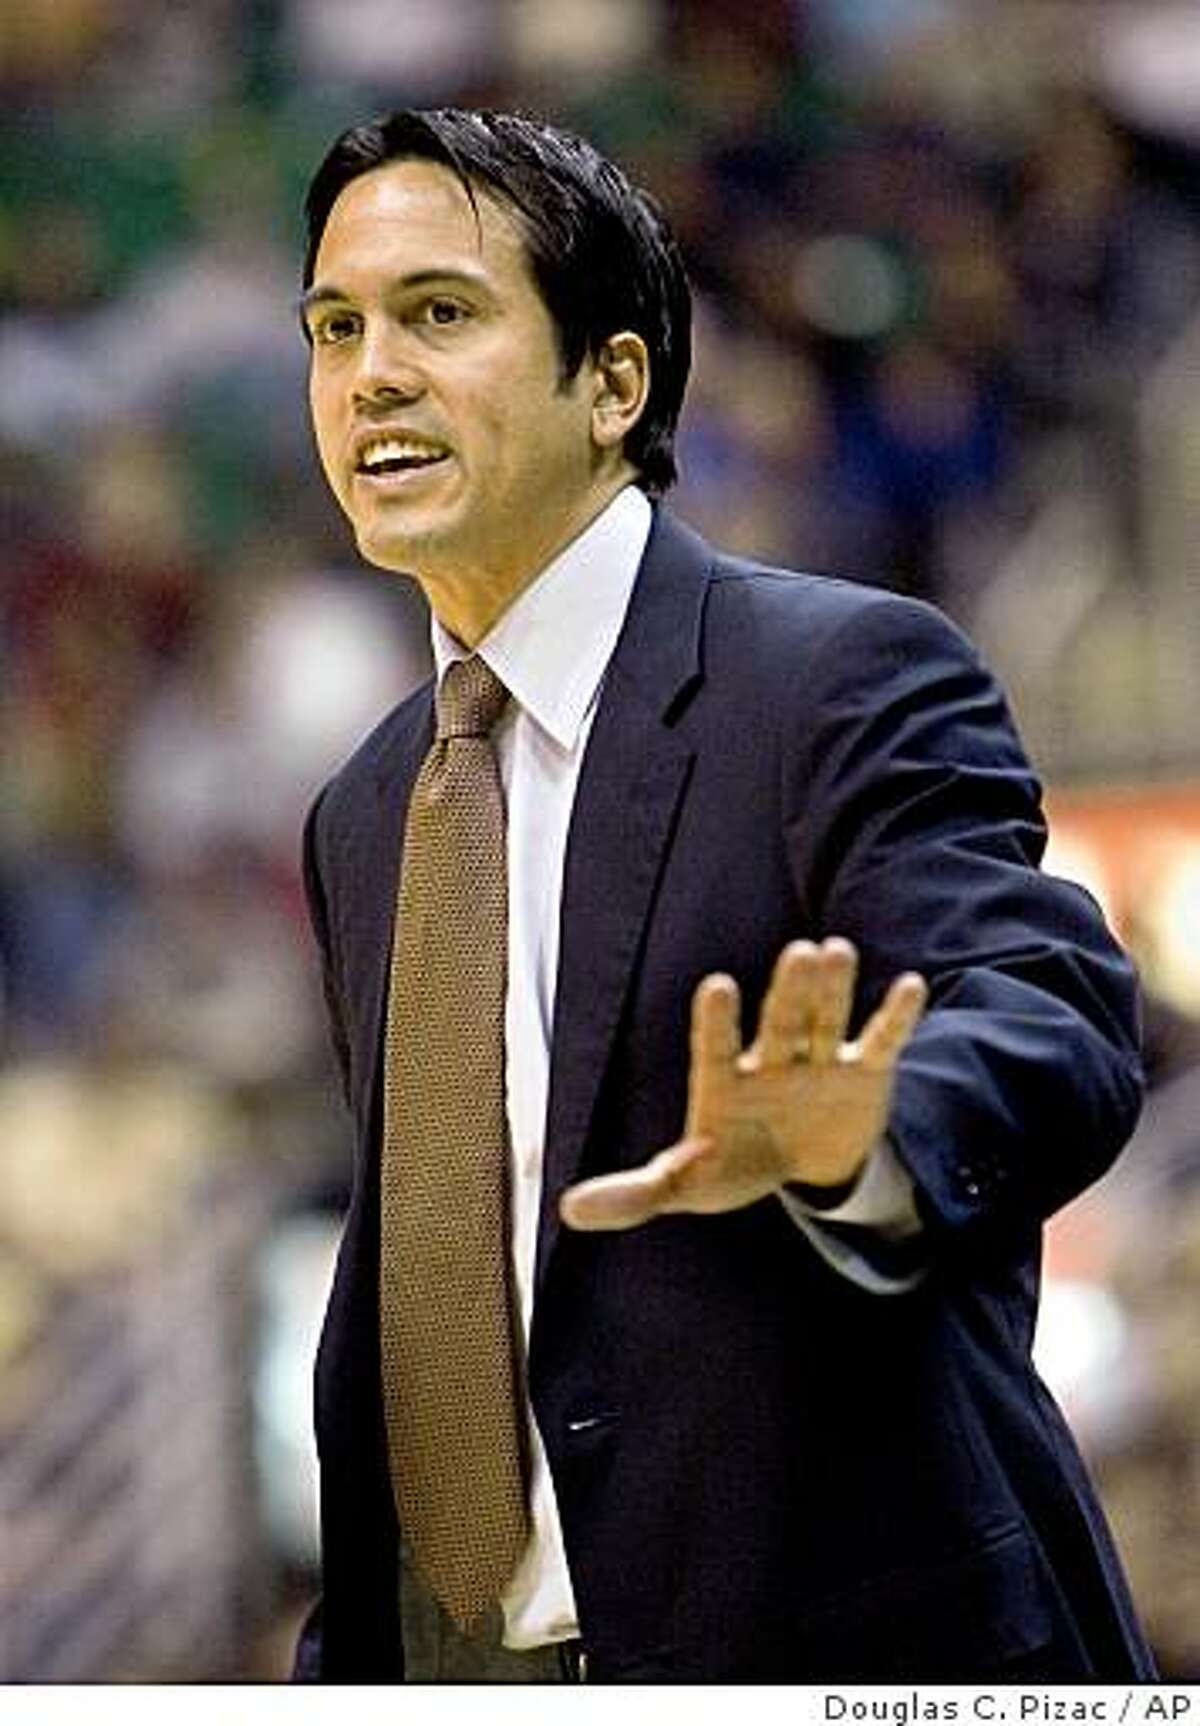 Miami Heat coach Erik Spoelstra has words with an official during the first quarter against the Utah Jazz in an NBA basketball game Wednesday, Dec. 3, 2008, in Salt Lake City. (AP Photo/Douglas C. Pizac)